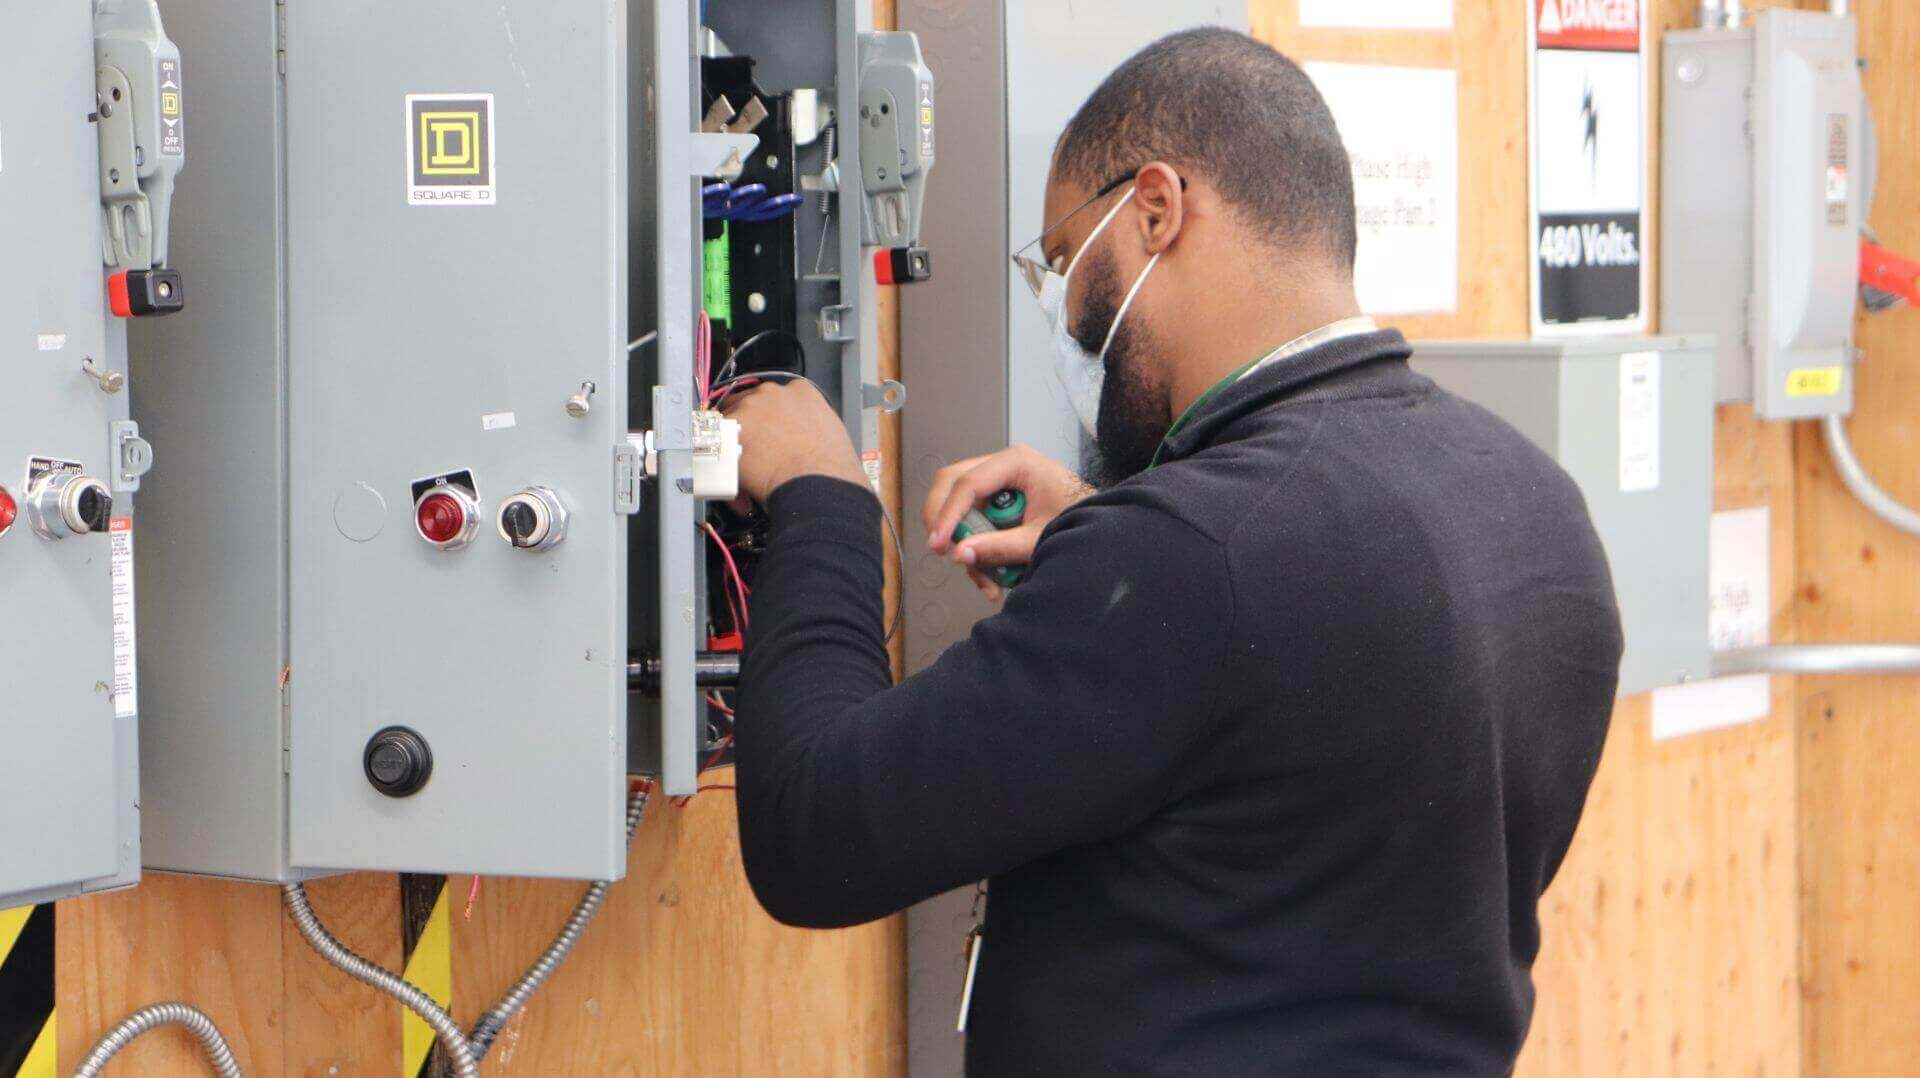 How Do I Start My Electrical Career?